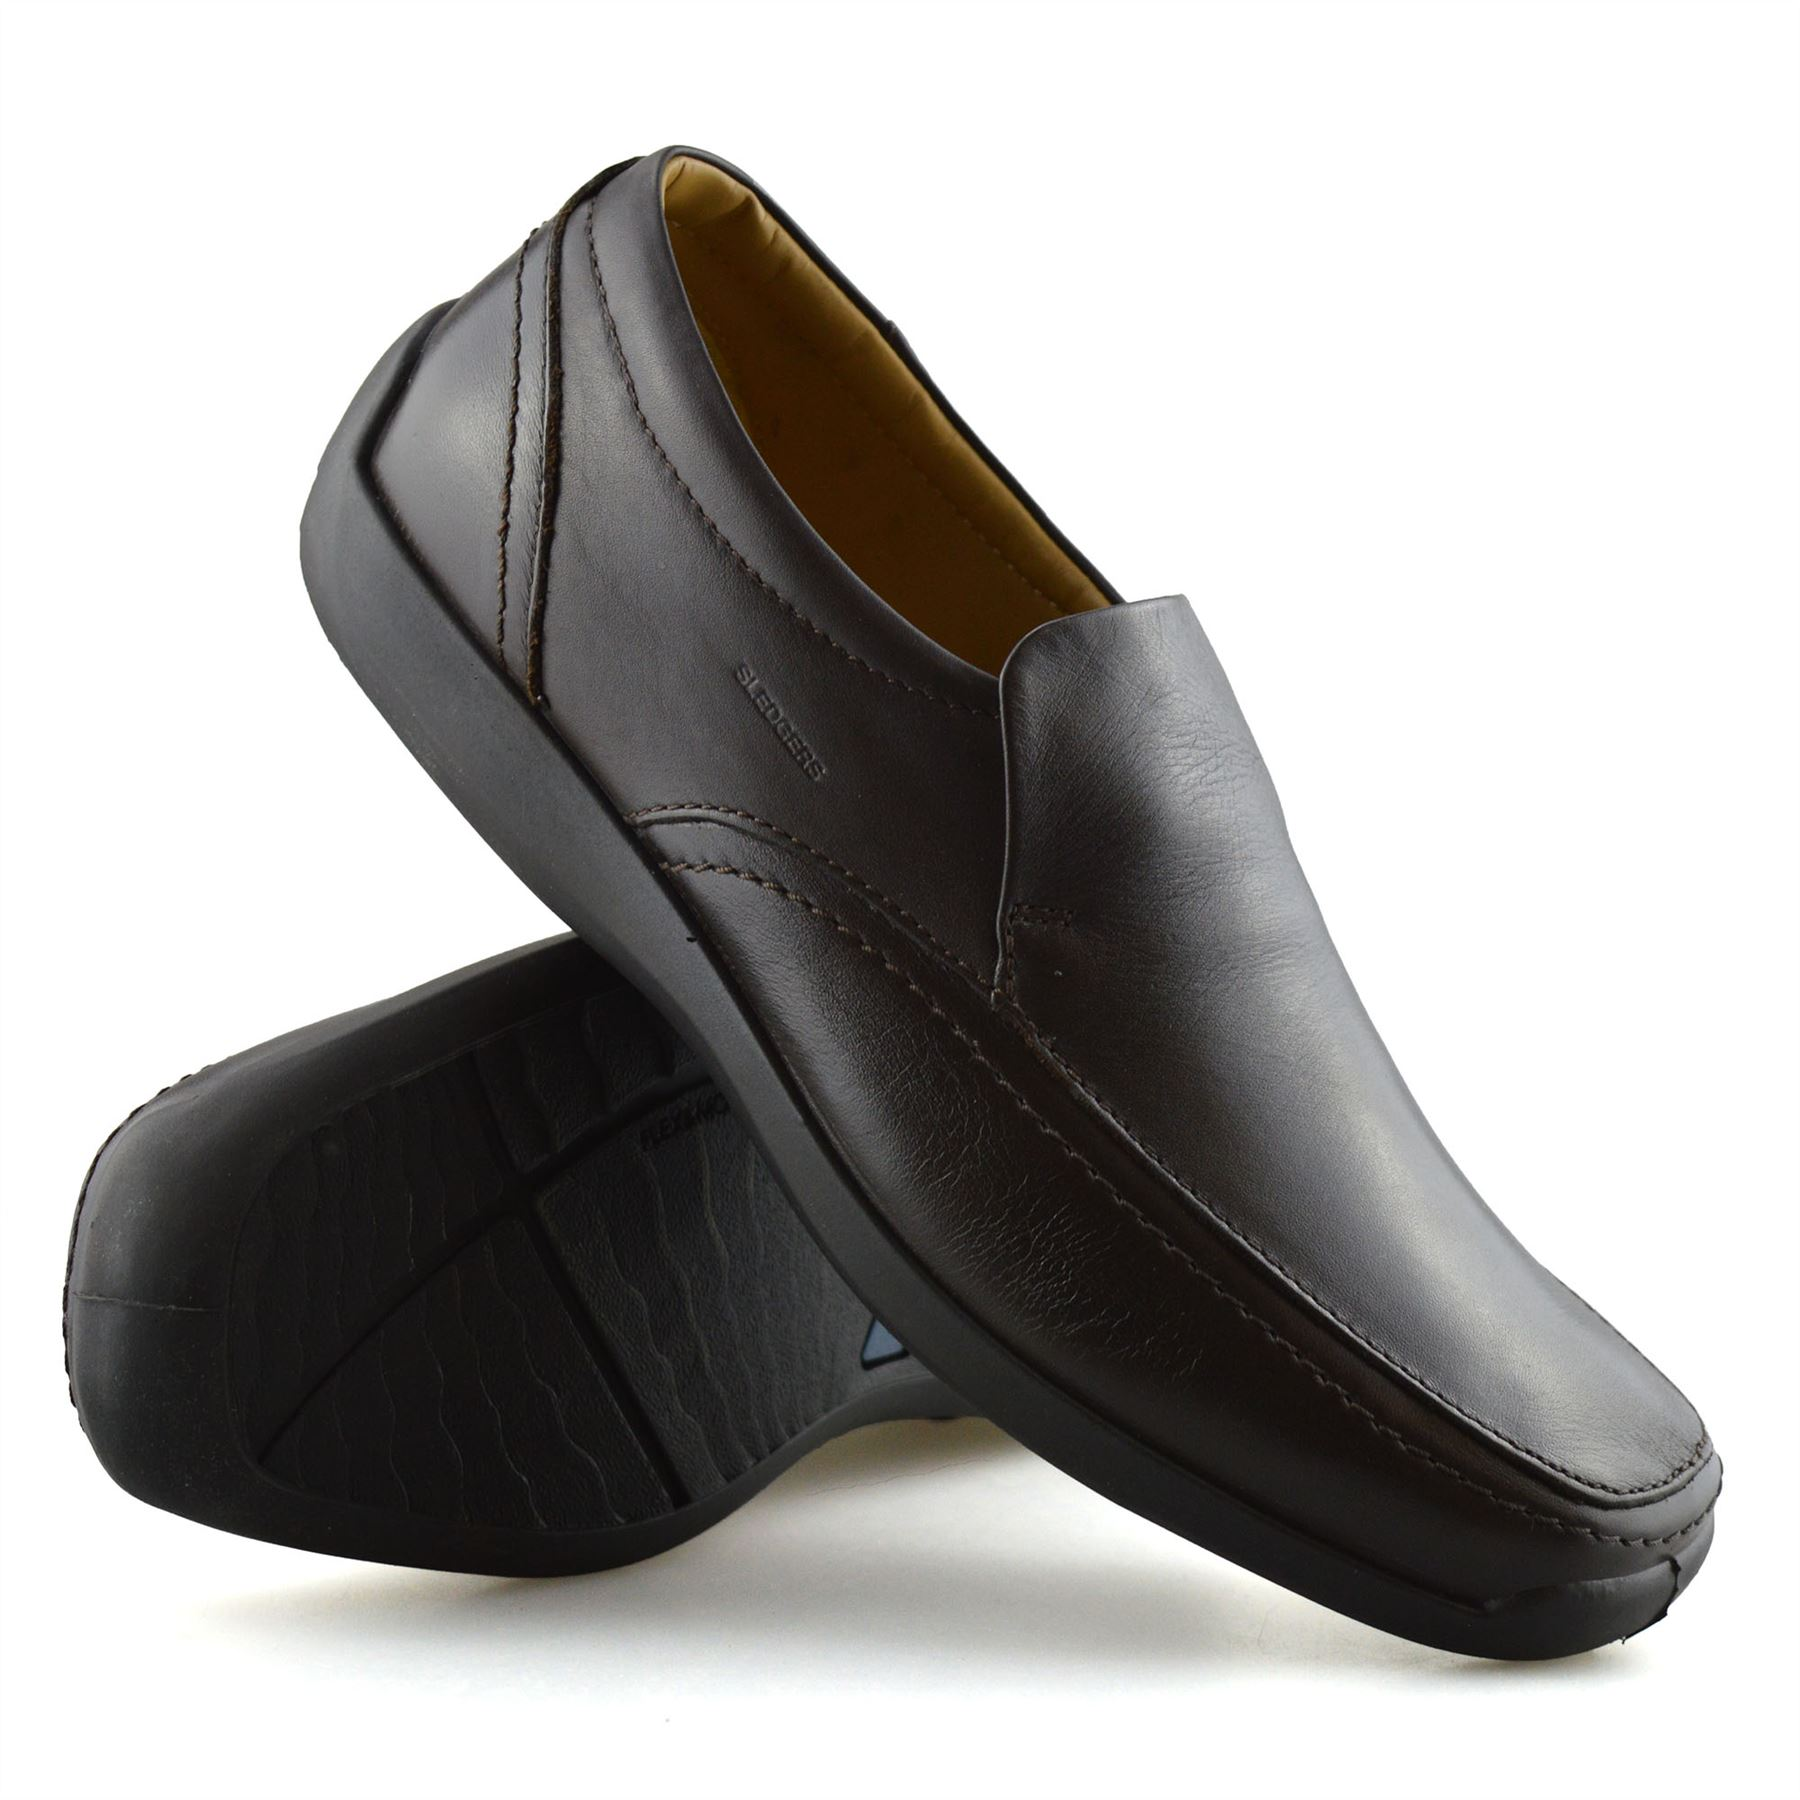 Mens-New-Leather-Casual-Slip-On-Walking-Loafers-Moccasin-Driving-Boat-Shoes-Size thumbnail 11